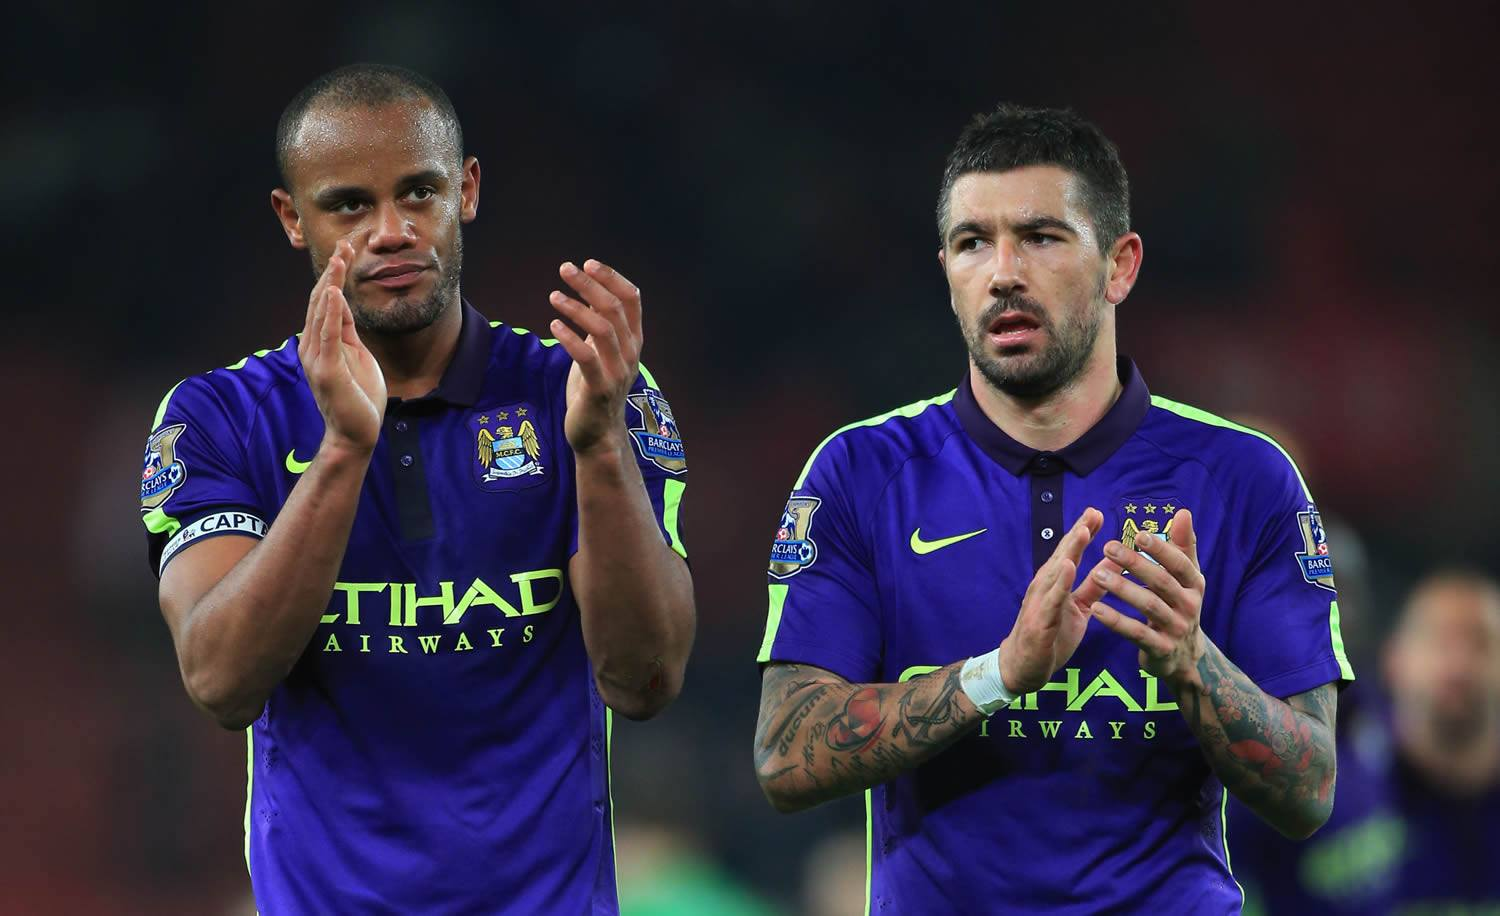 Saluting the City support - Kompany and Kolarov acknowledge the large and vocal City contingent on a cold night at the Britannia. Courtesy@MCFC